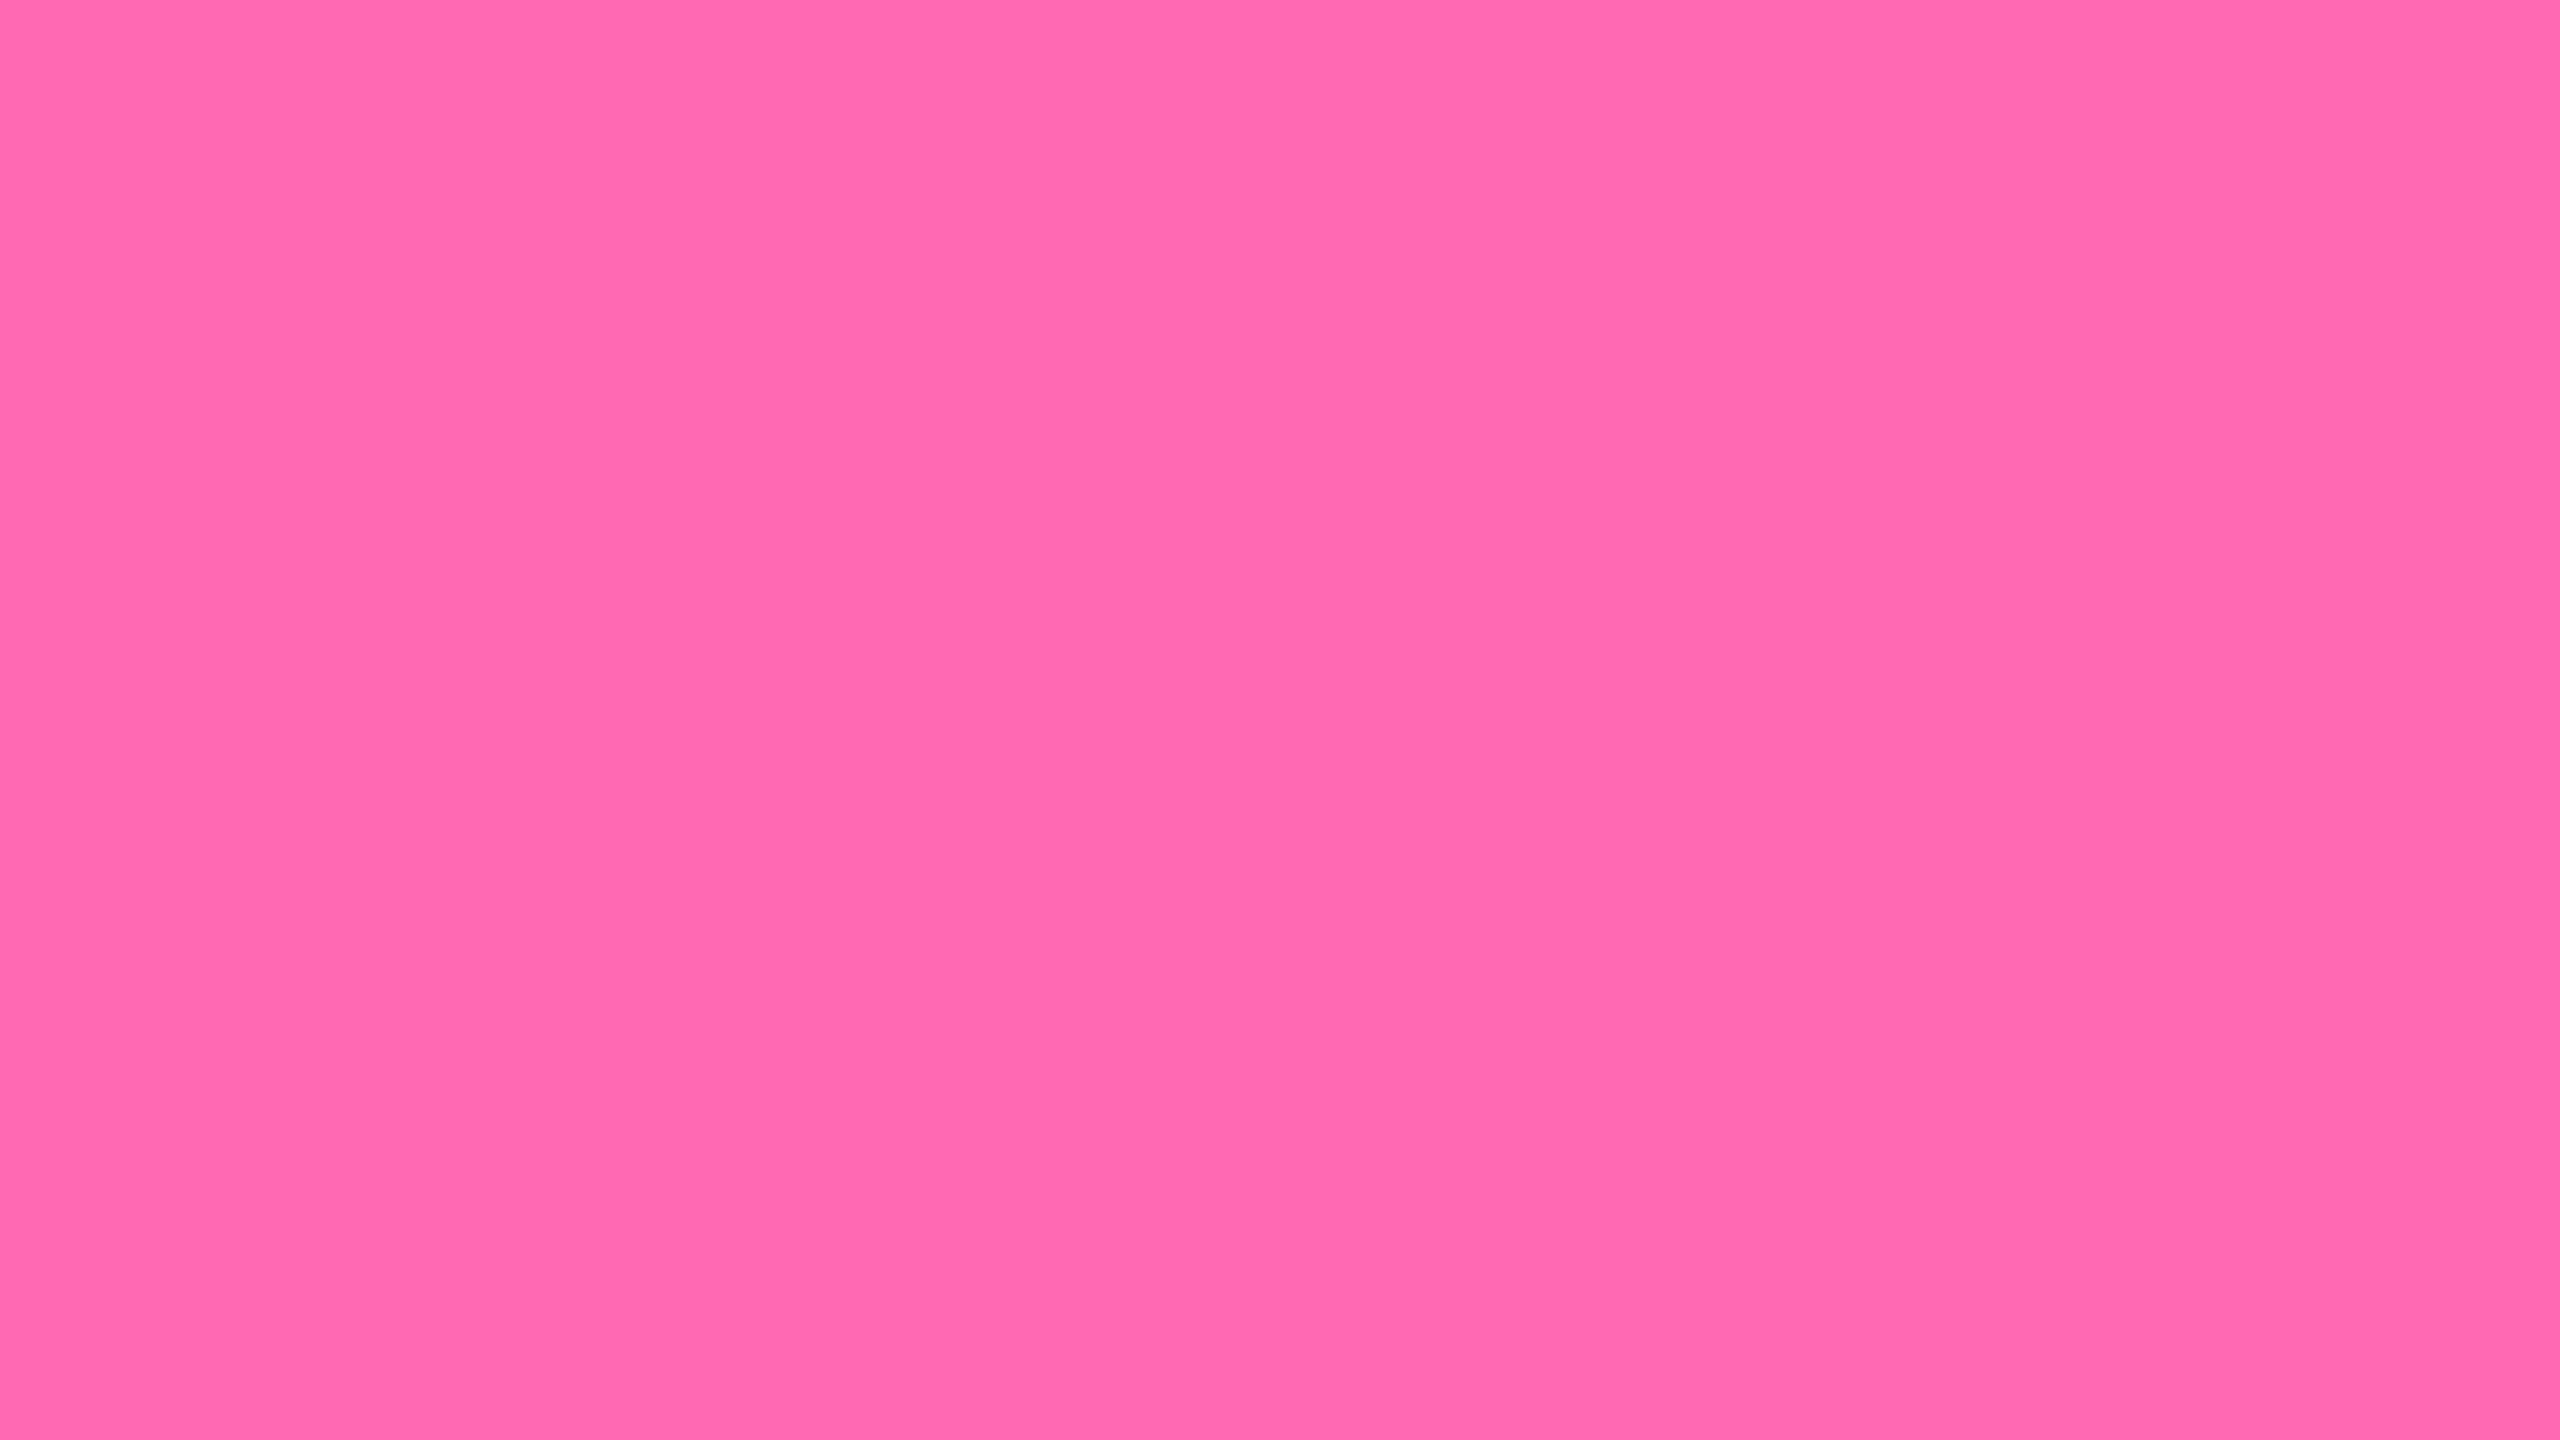 2560x1440 Hot Pink Solid Color Background